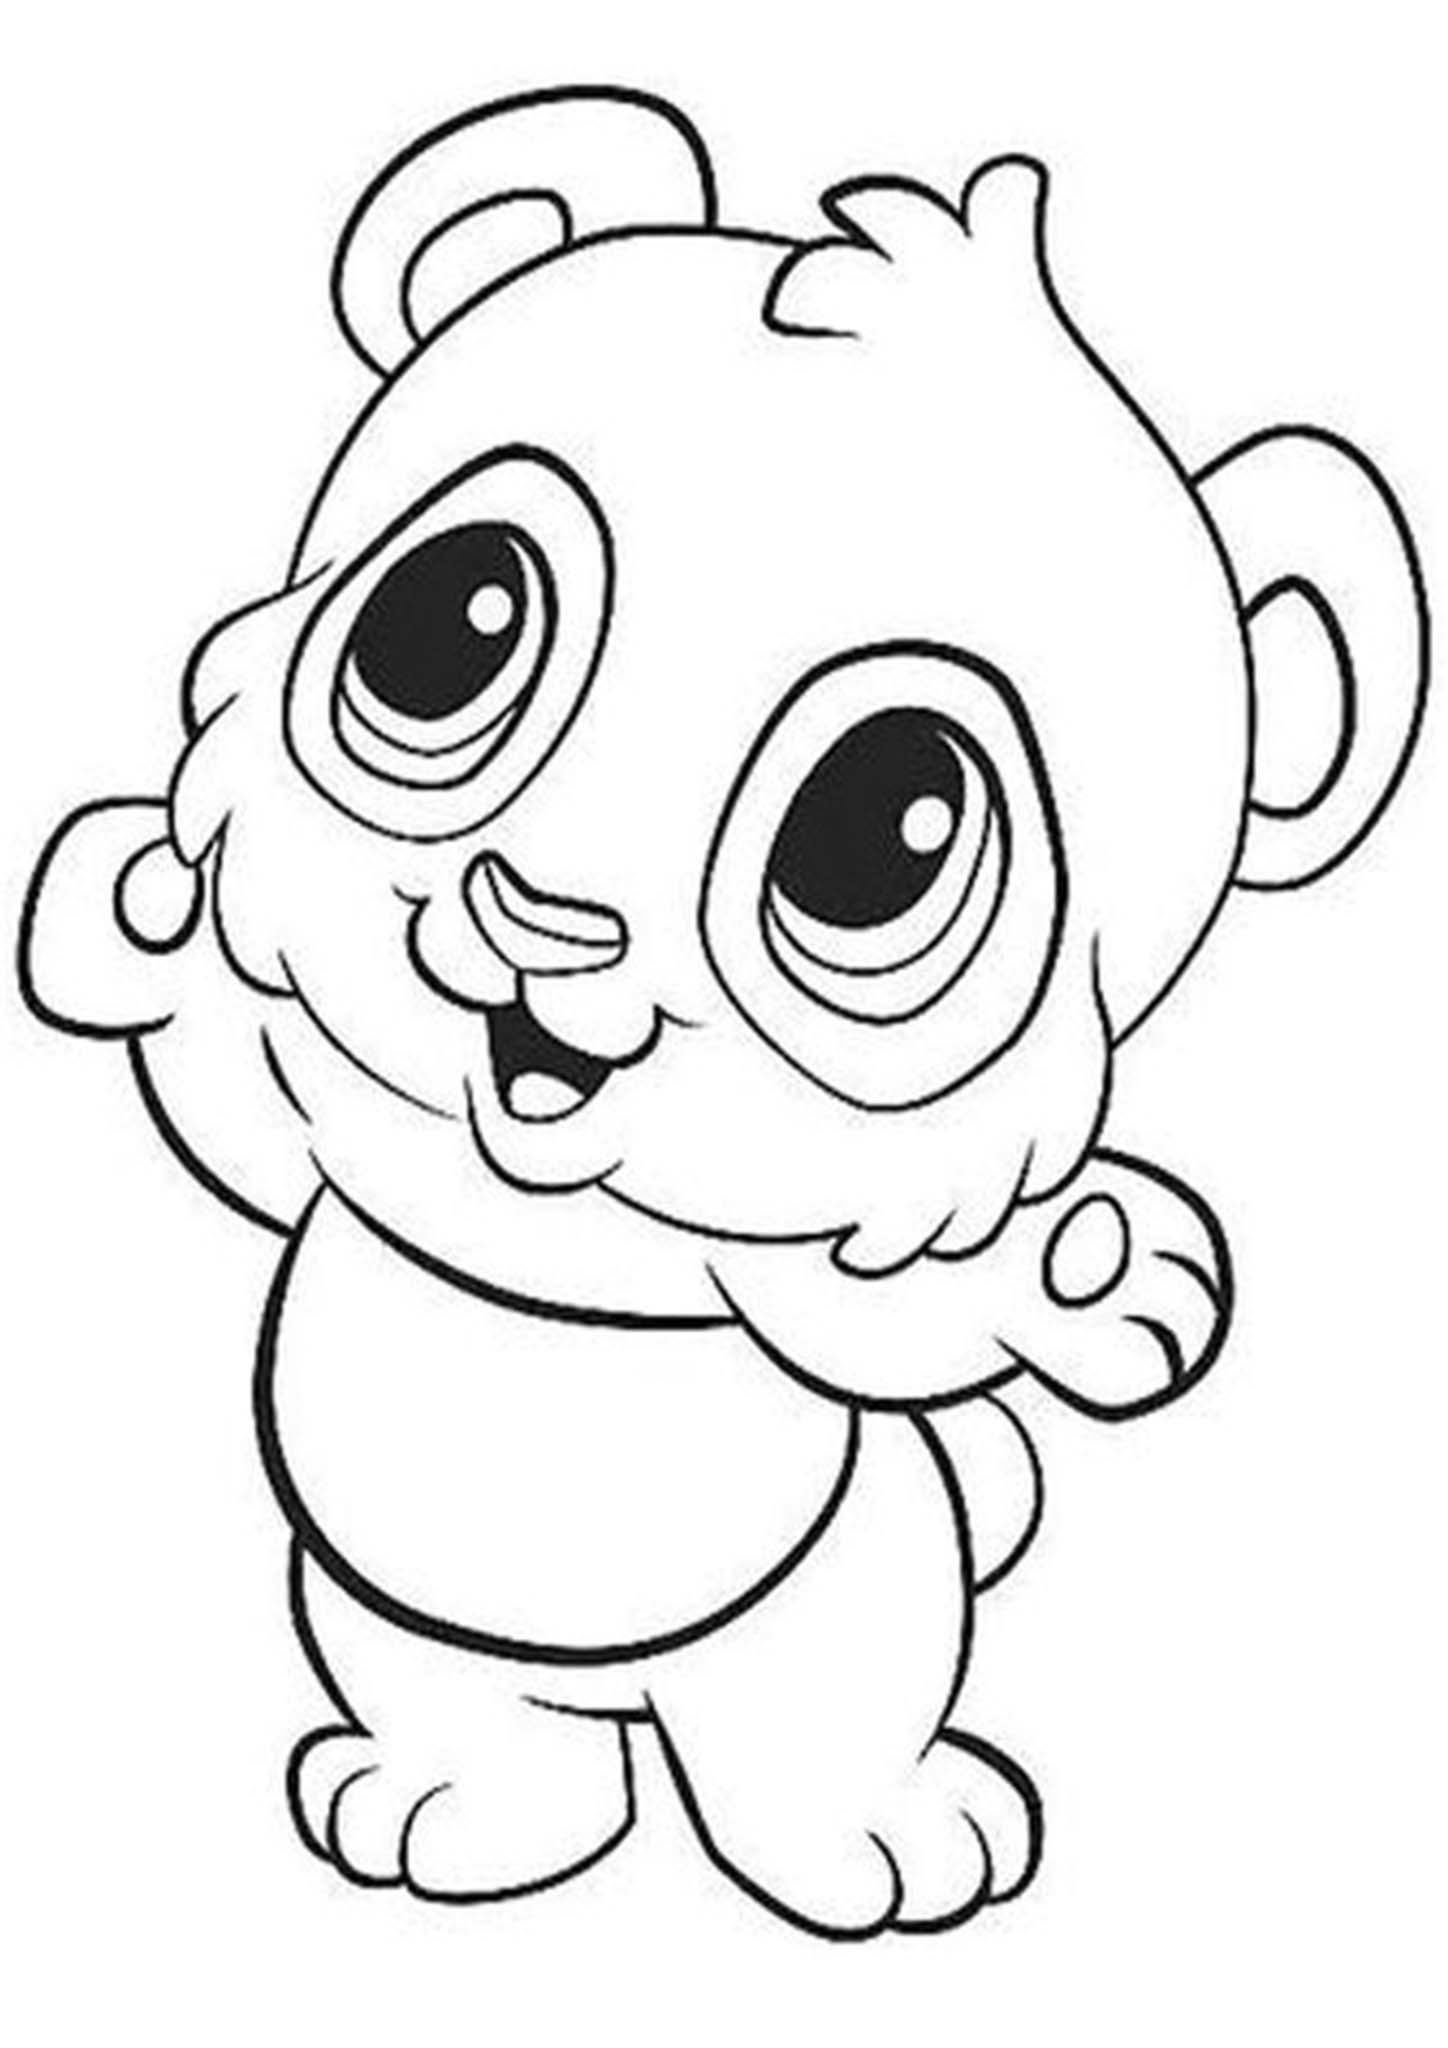 coloring panda picture free easy to print panda coloring pages tulamama panda picture coloring